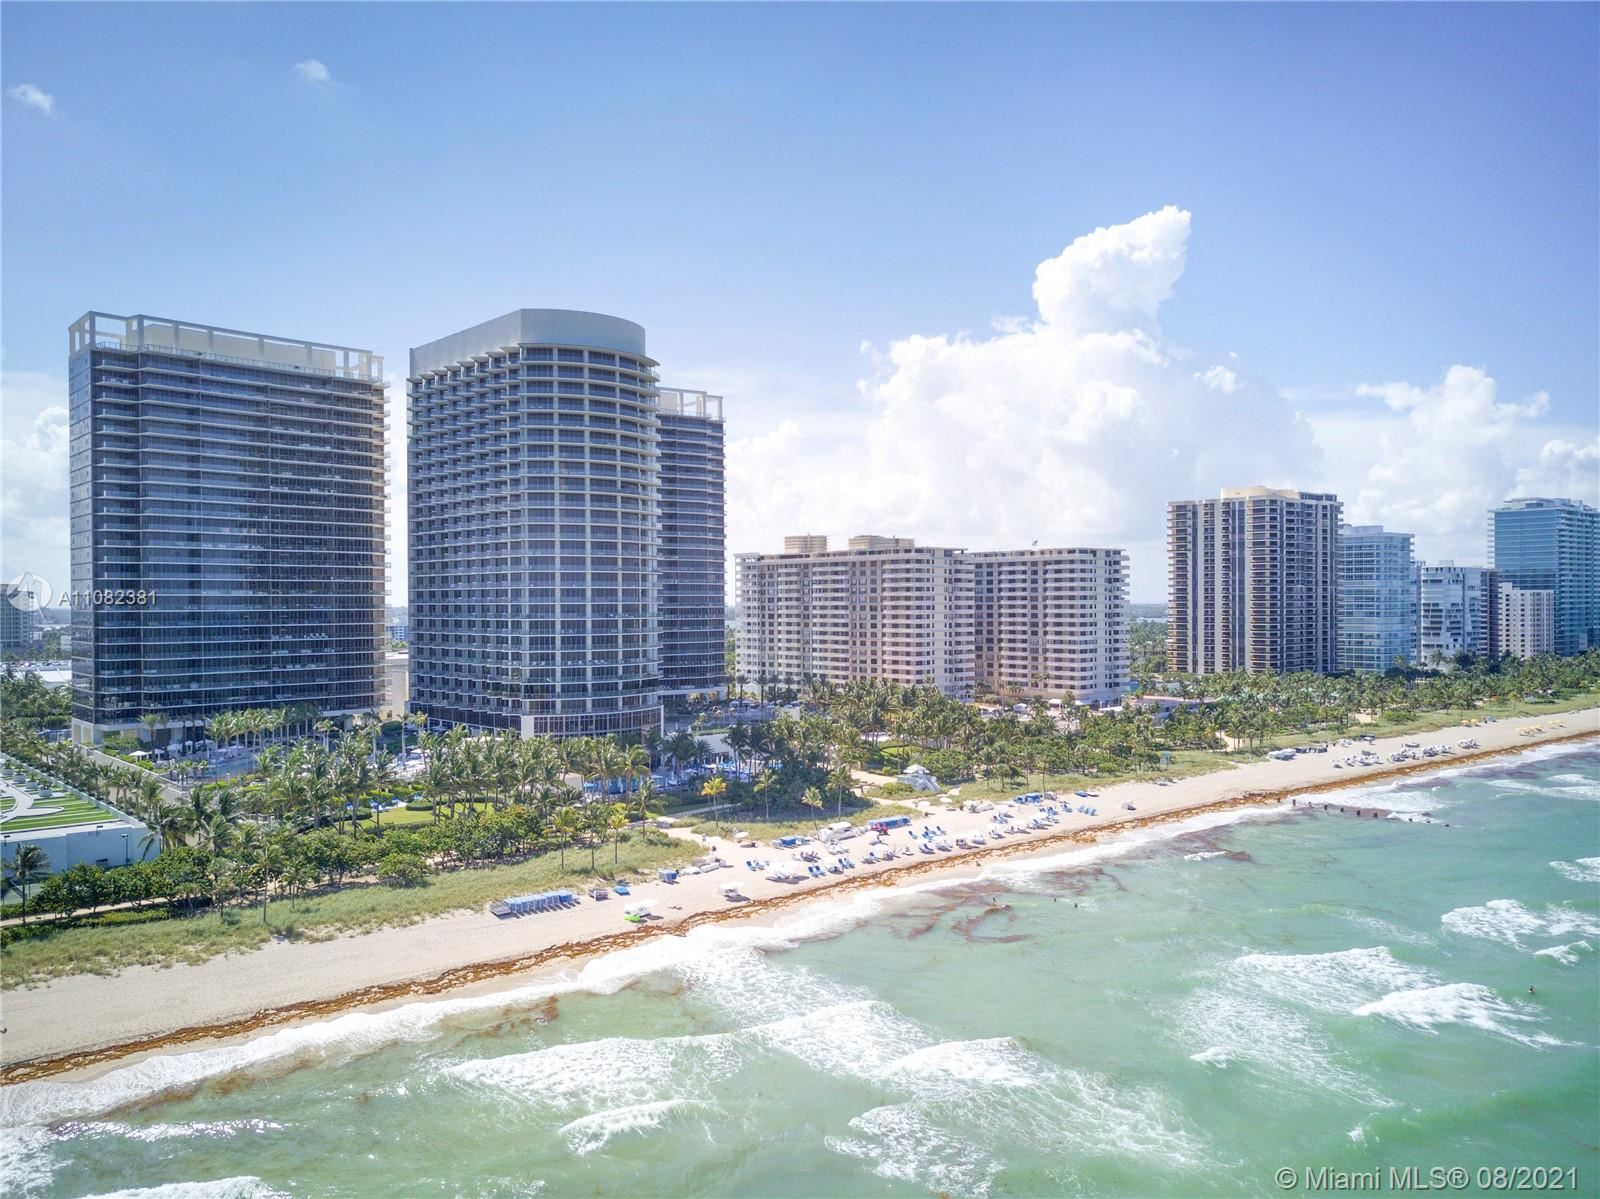 9705 Collins Ave #1105N, Bal Harbour, FL 33154 - #: A11082381